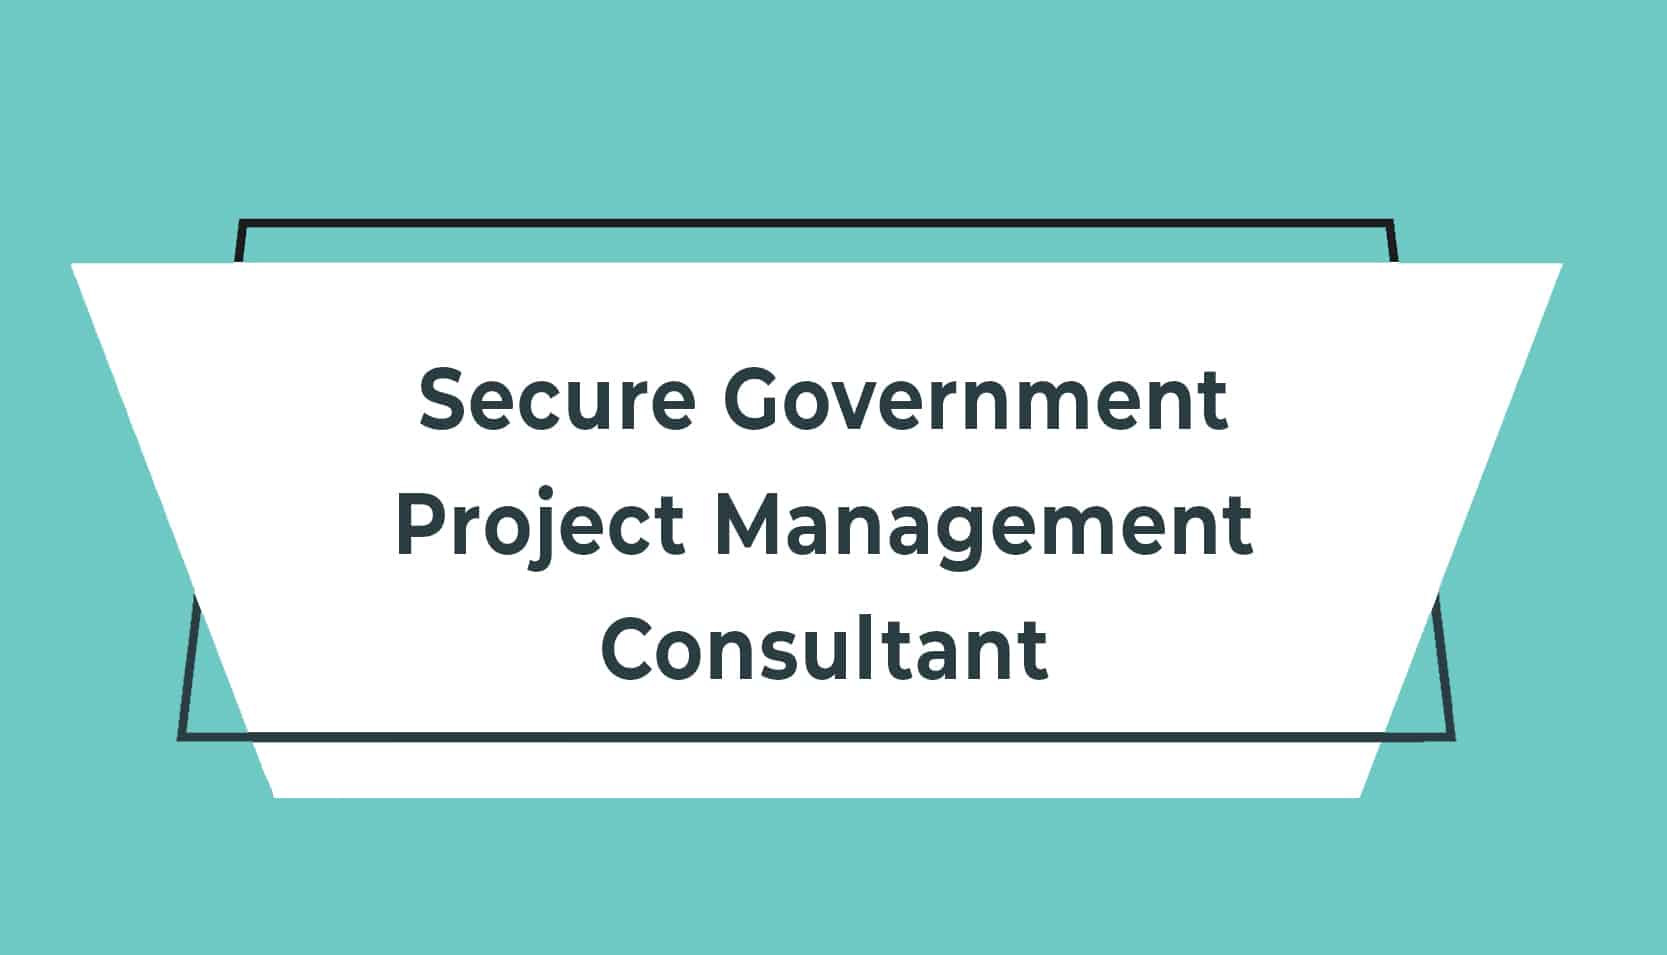 JD adverts V2 Secure Government Project Management Consultant